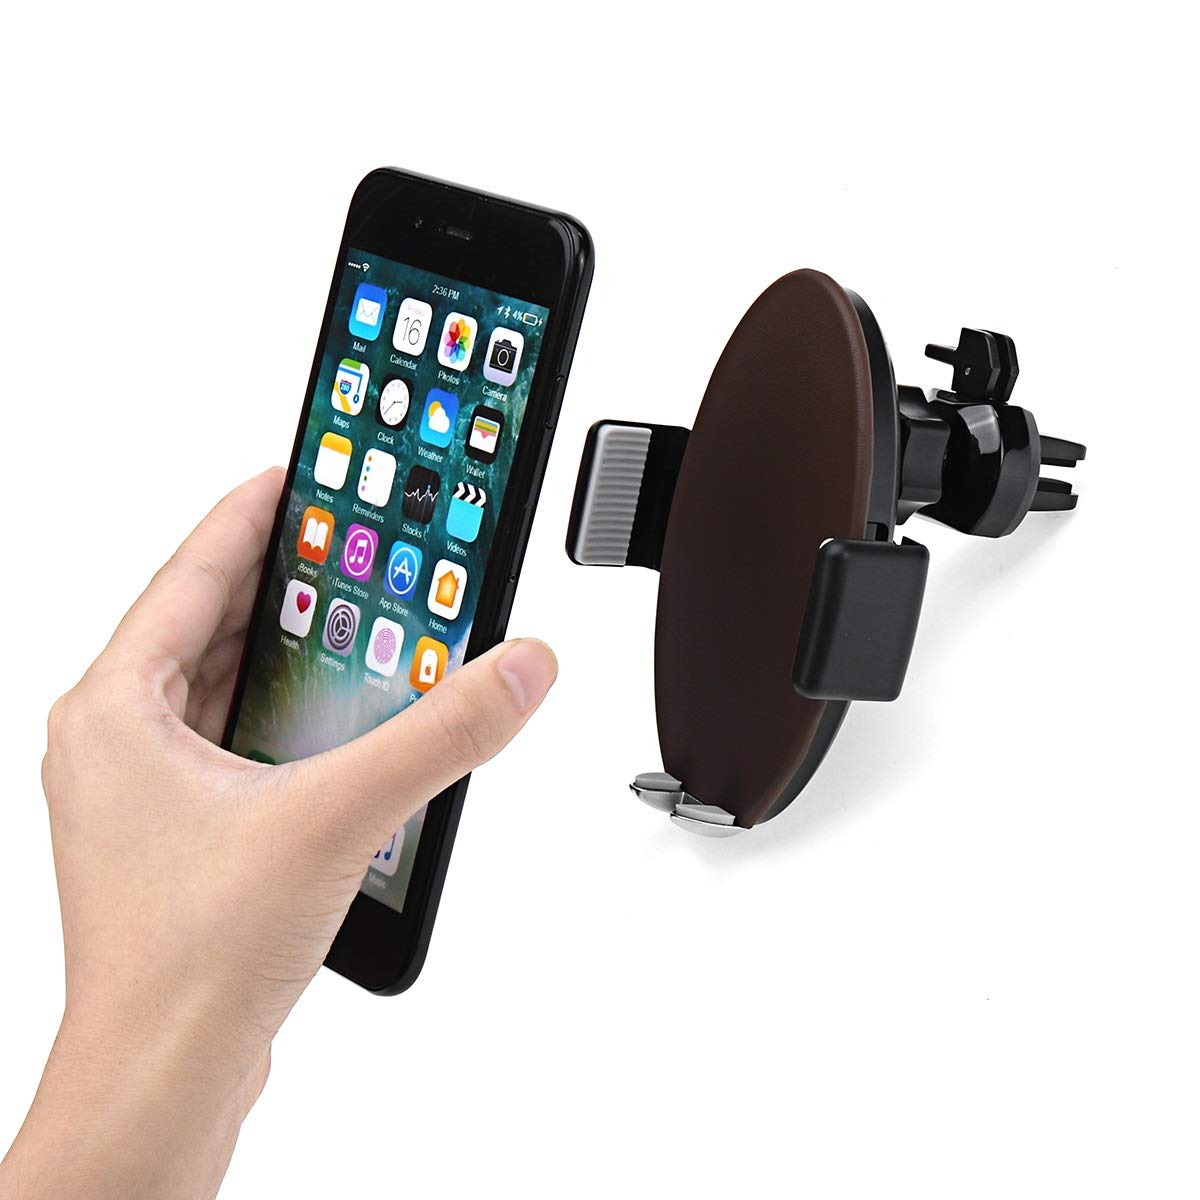 ZHENWOCAI Car Air Vent Fast Wireless Charger Phone Holder Touch Automatic Mount for iPhone X New (Color : Brown)